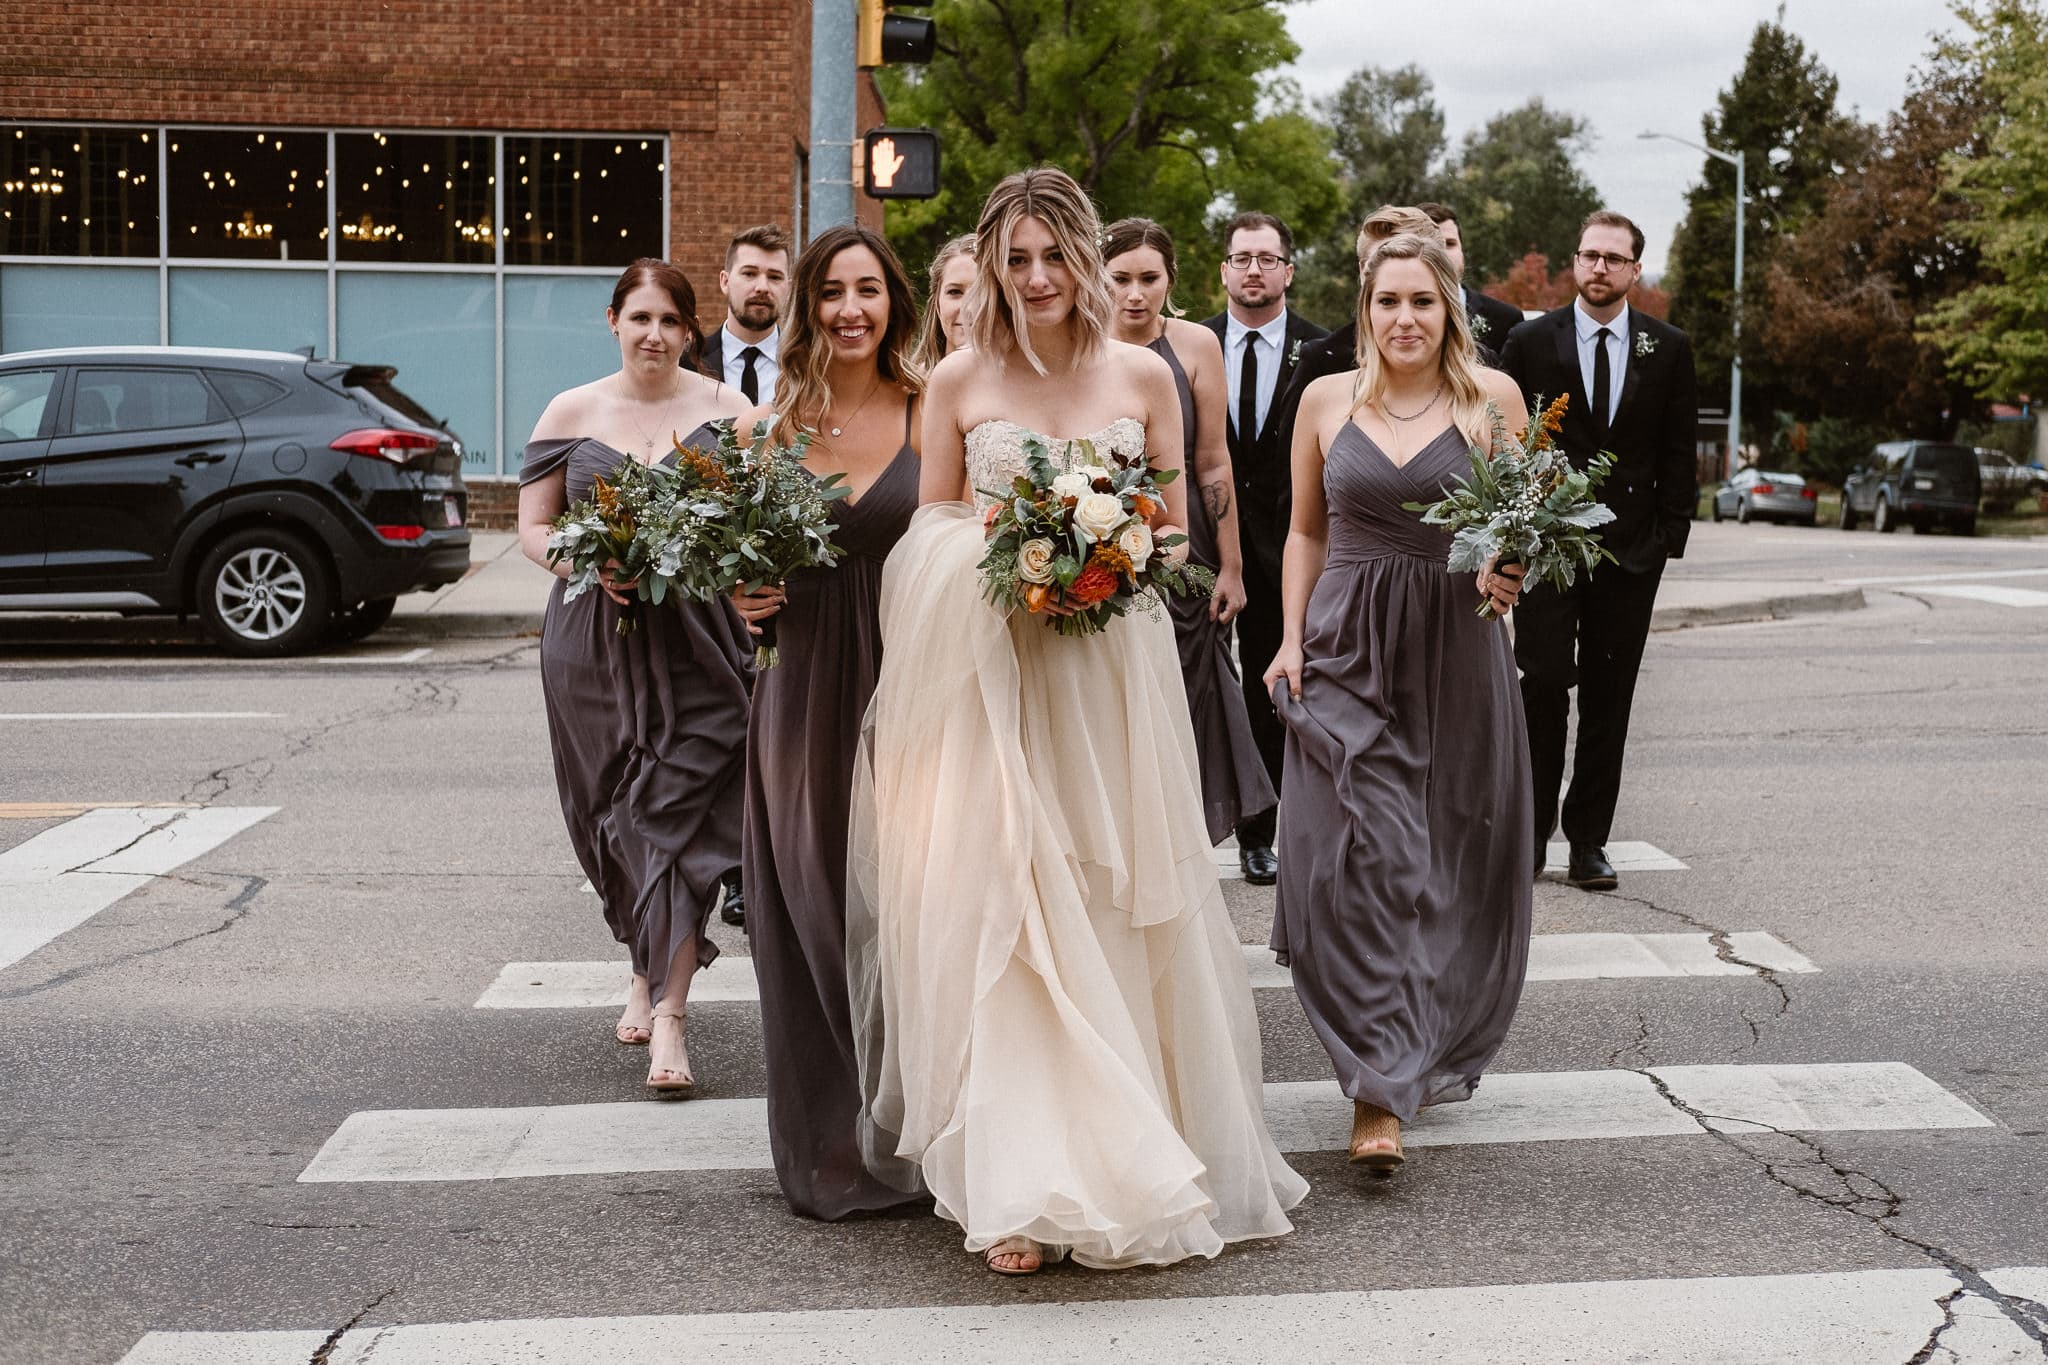 St Vrain Wedding Photographer | Longmont Wedding Photographer | Colorado Winter Wedding Photographer, Colorado industrial chic wedding, bride with bridesmaids, Marchesa wedding dress, gray bridesmaid dresses